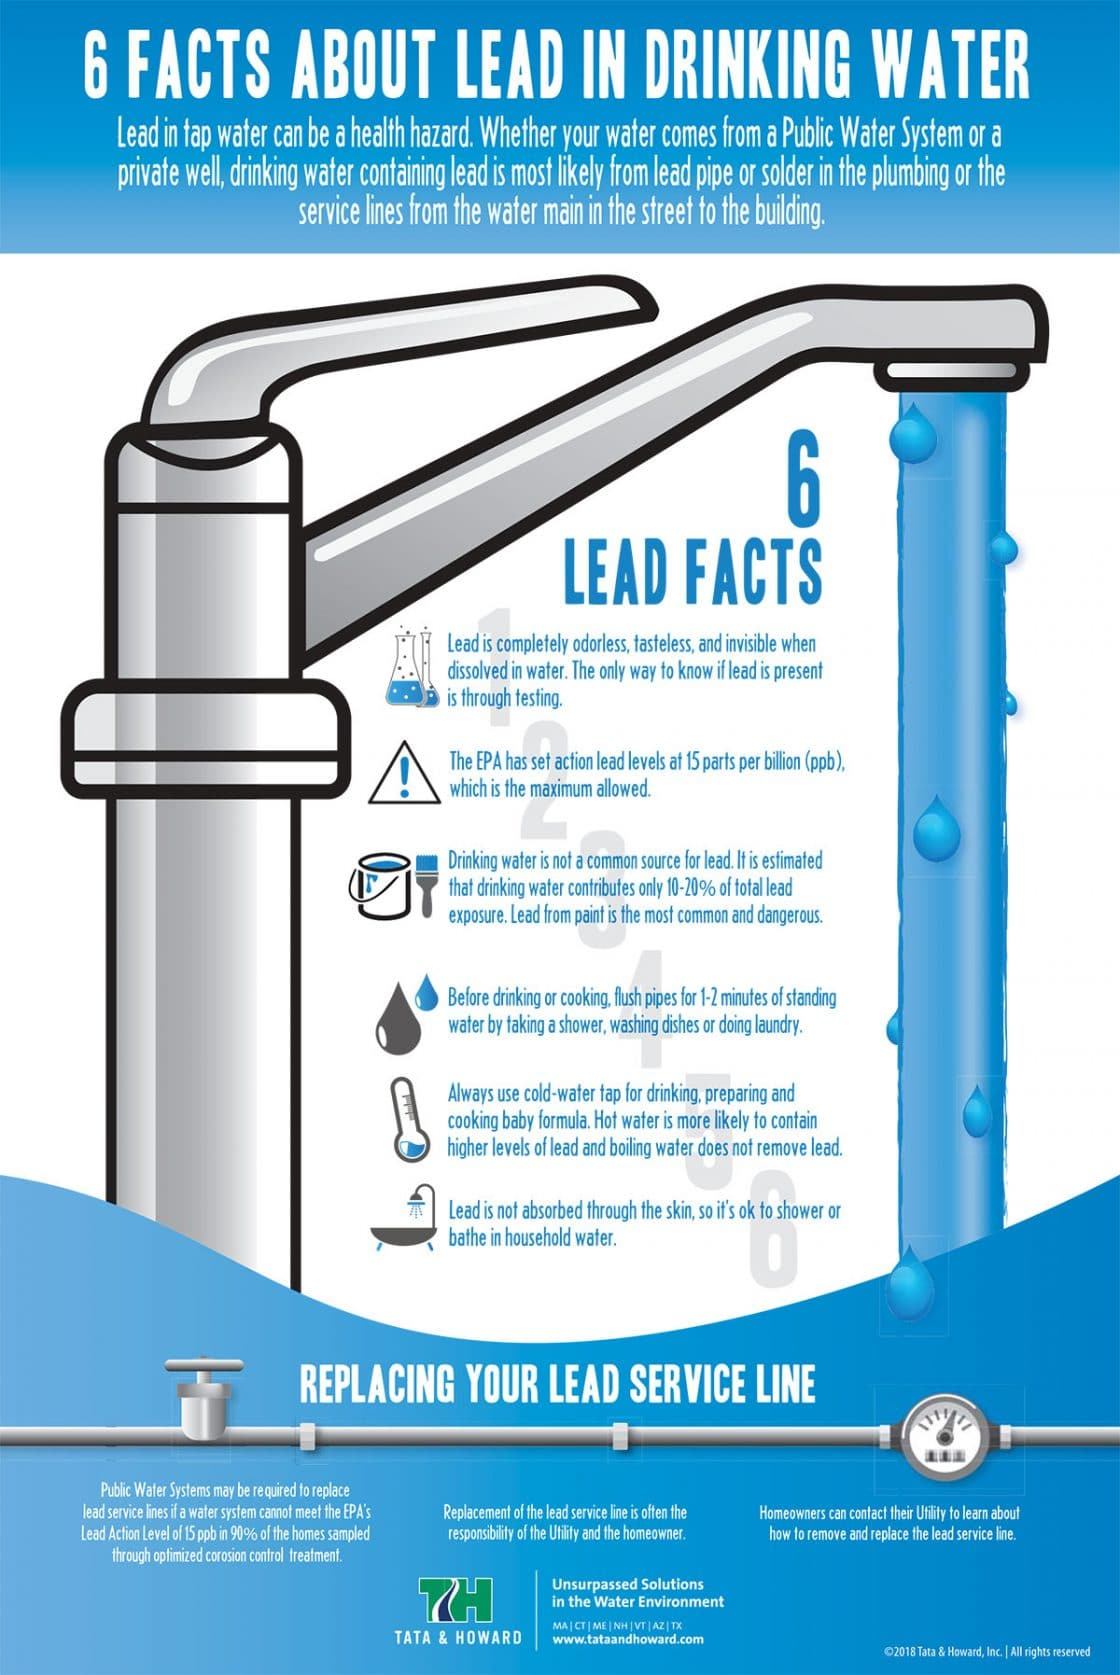 6 Facts About Lead In Drinking Water - Tata & Howard